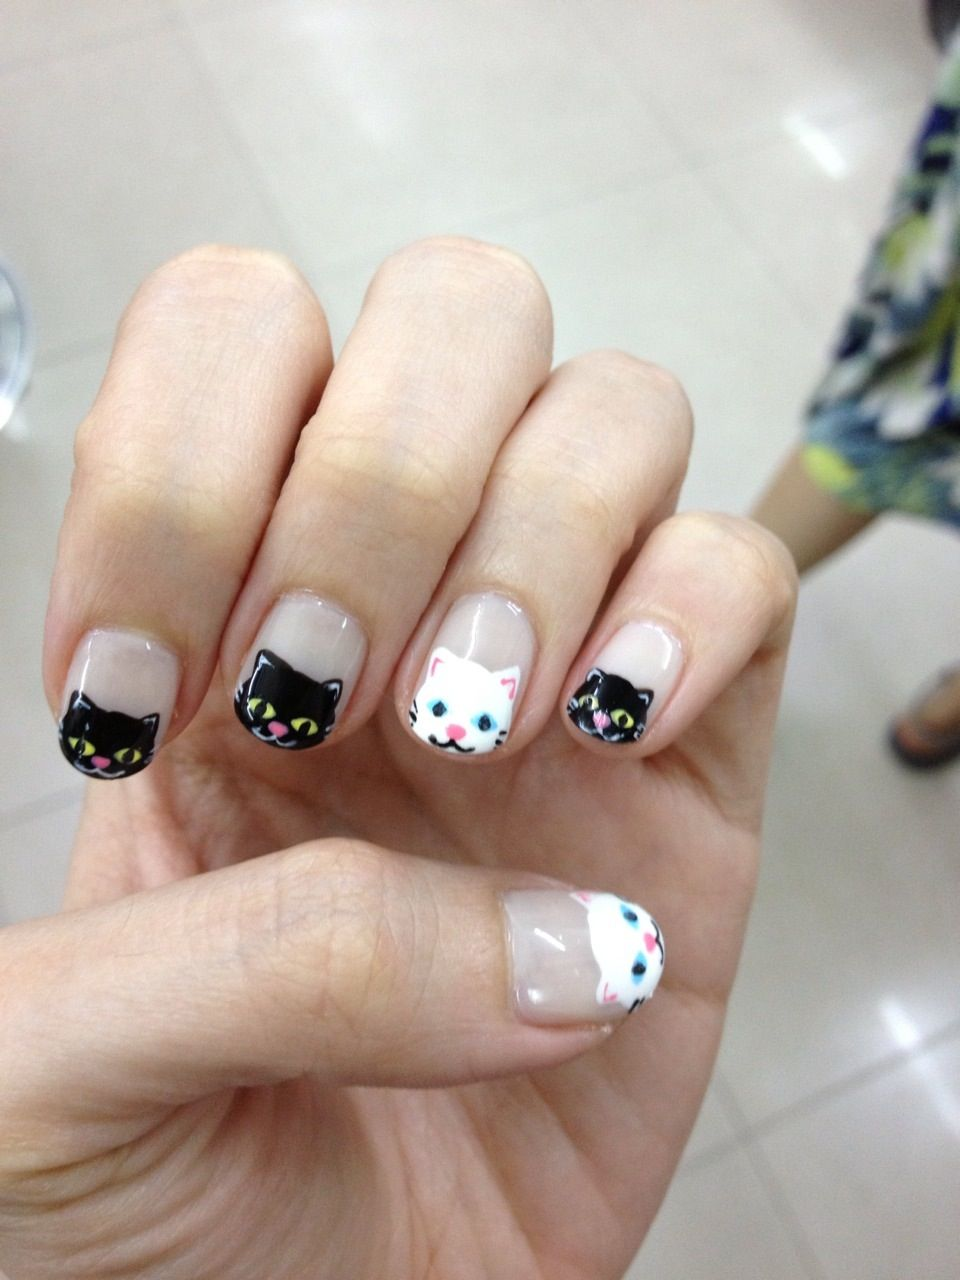 cat nails Marketing for Nail Technicians http://www.nailtechsuccess.com/ - Pin By Designs To Notice On Hair, Makeup, Nails, Skin Nails, Cat